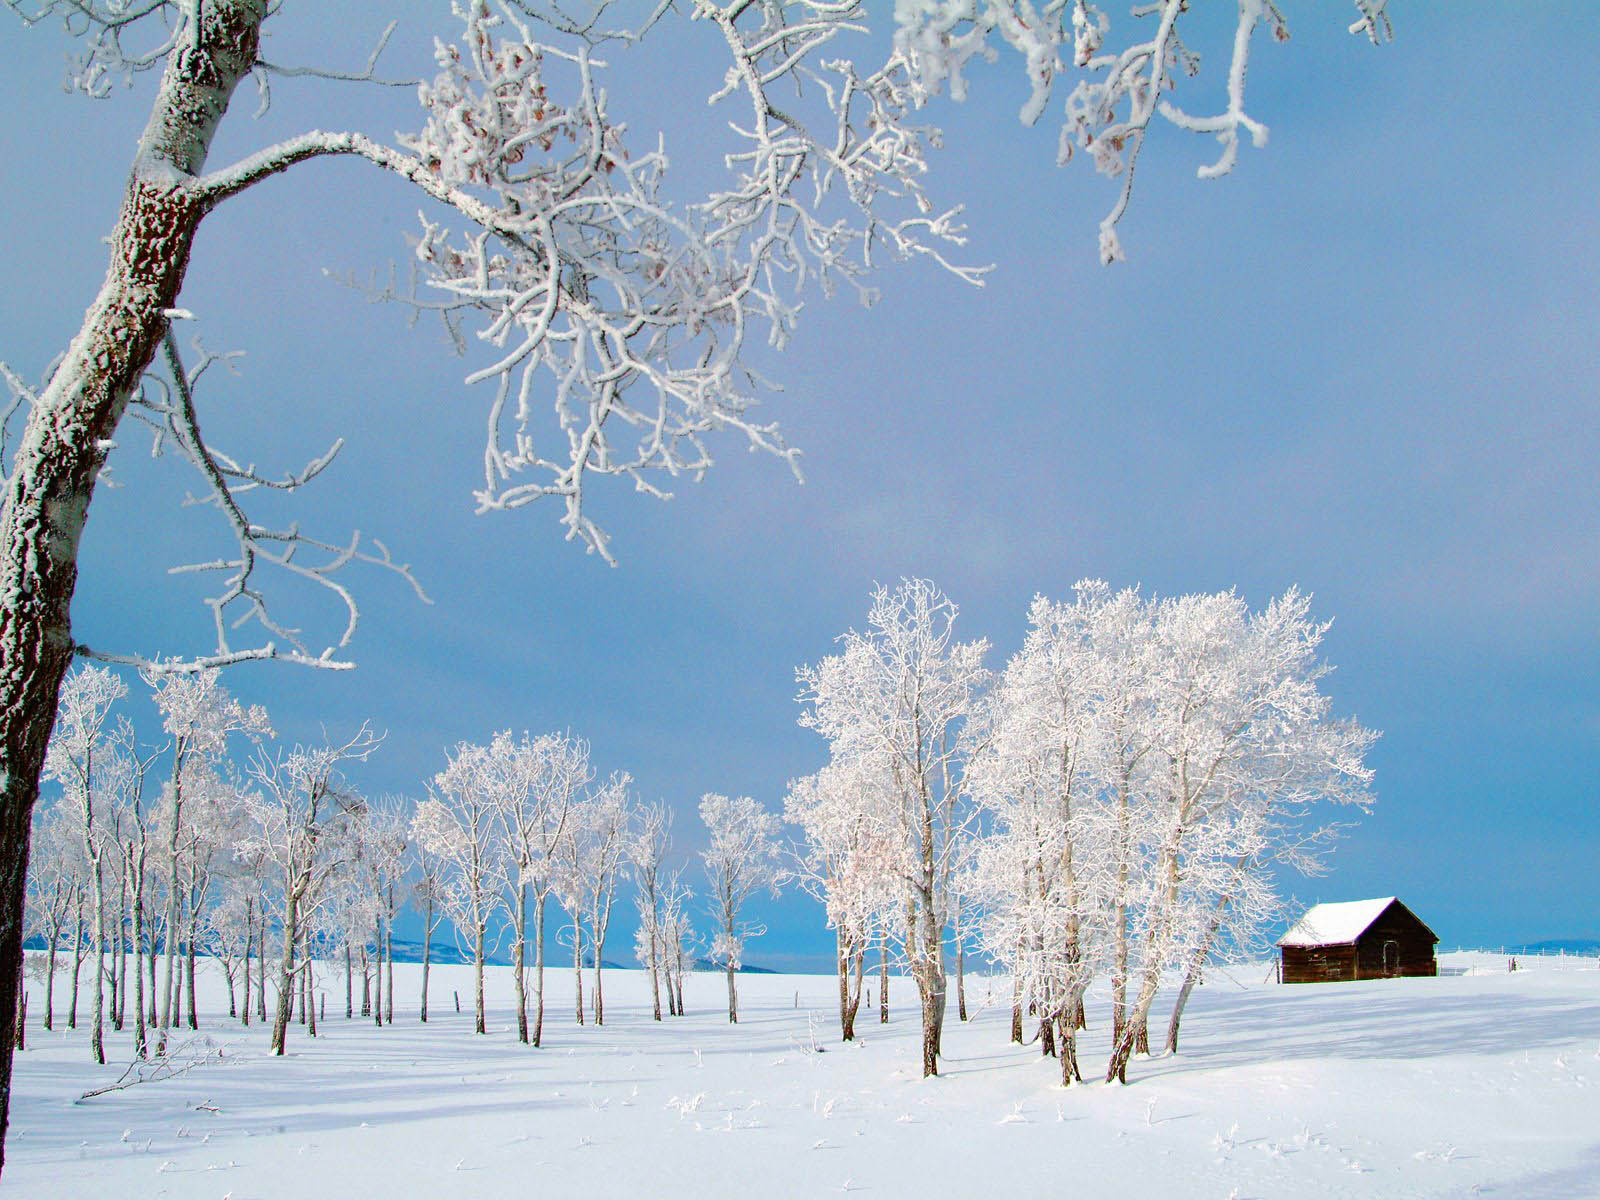 Winter Desktop Wallpapers and Backgrounds Desktop Wallpapers Online 1600x1200